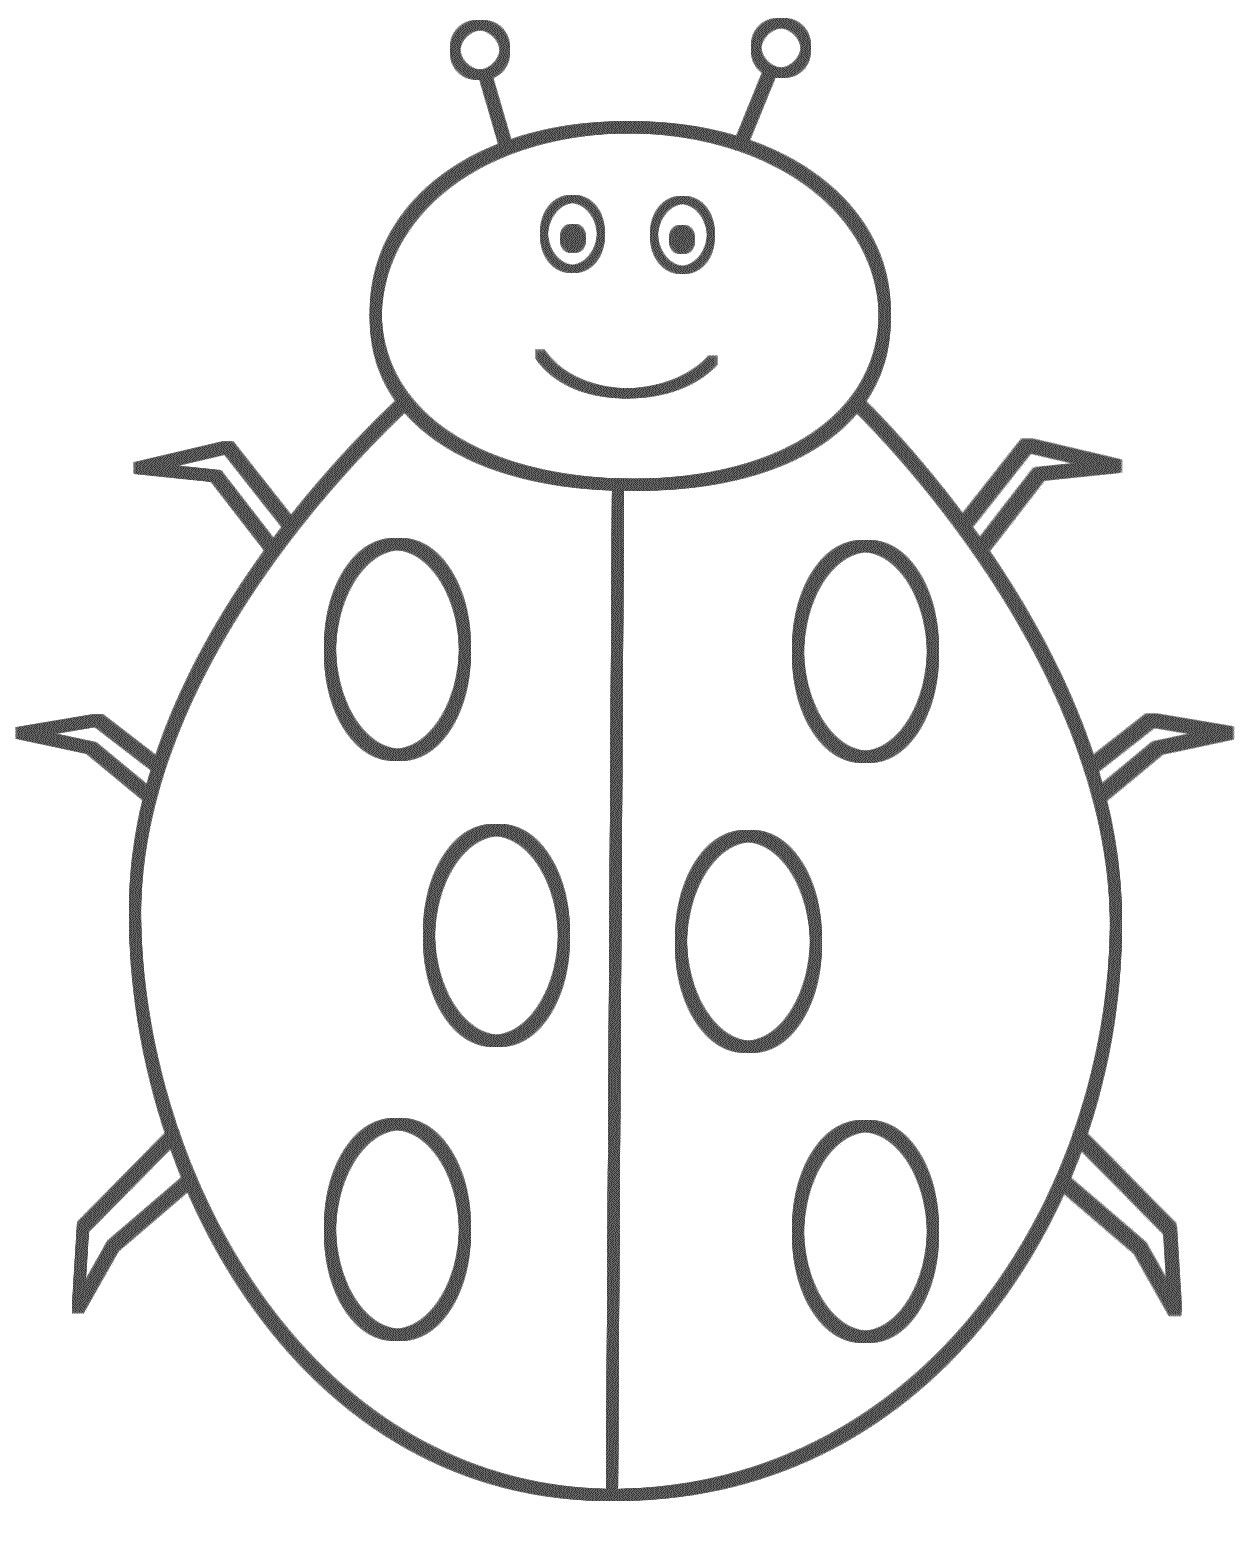 incridible bug coloring pages ladybug coloring pages animals - Colouring Activities For Toddlers